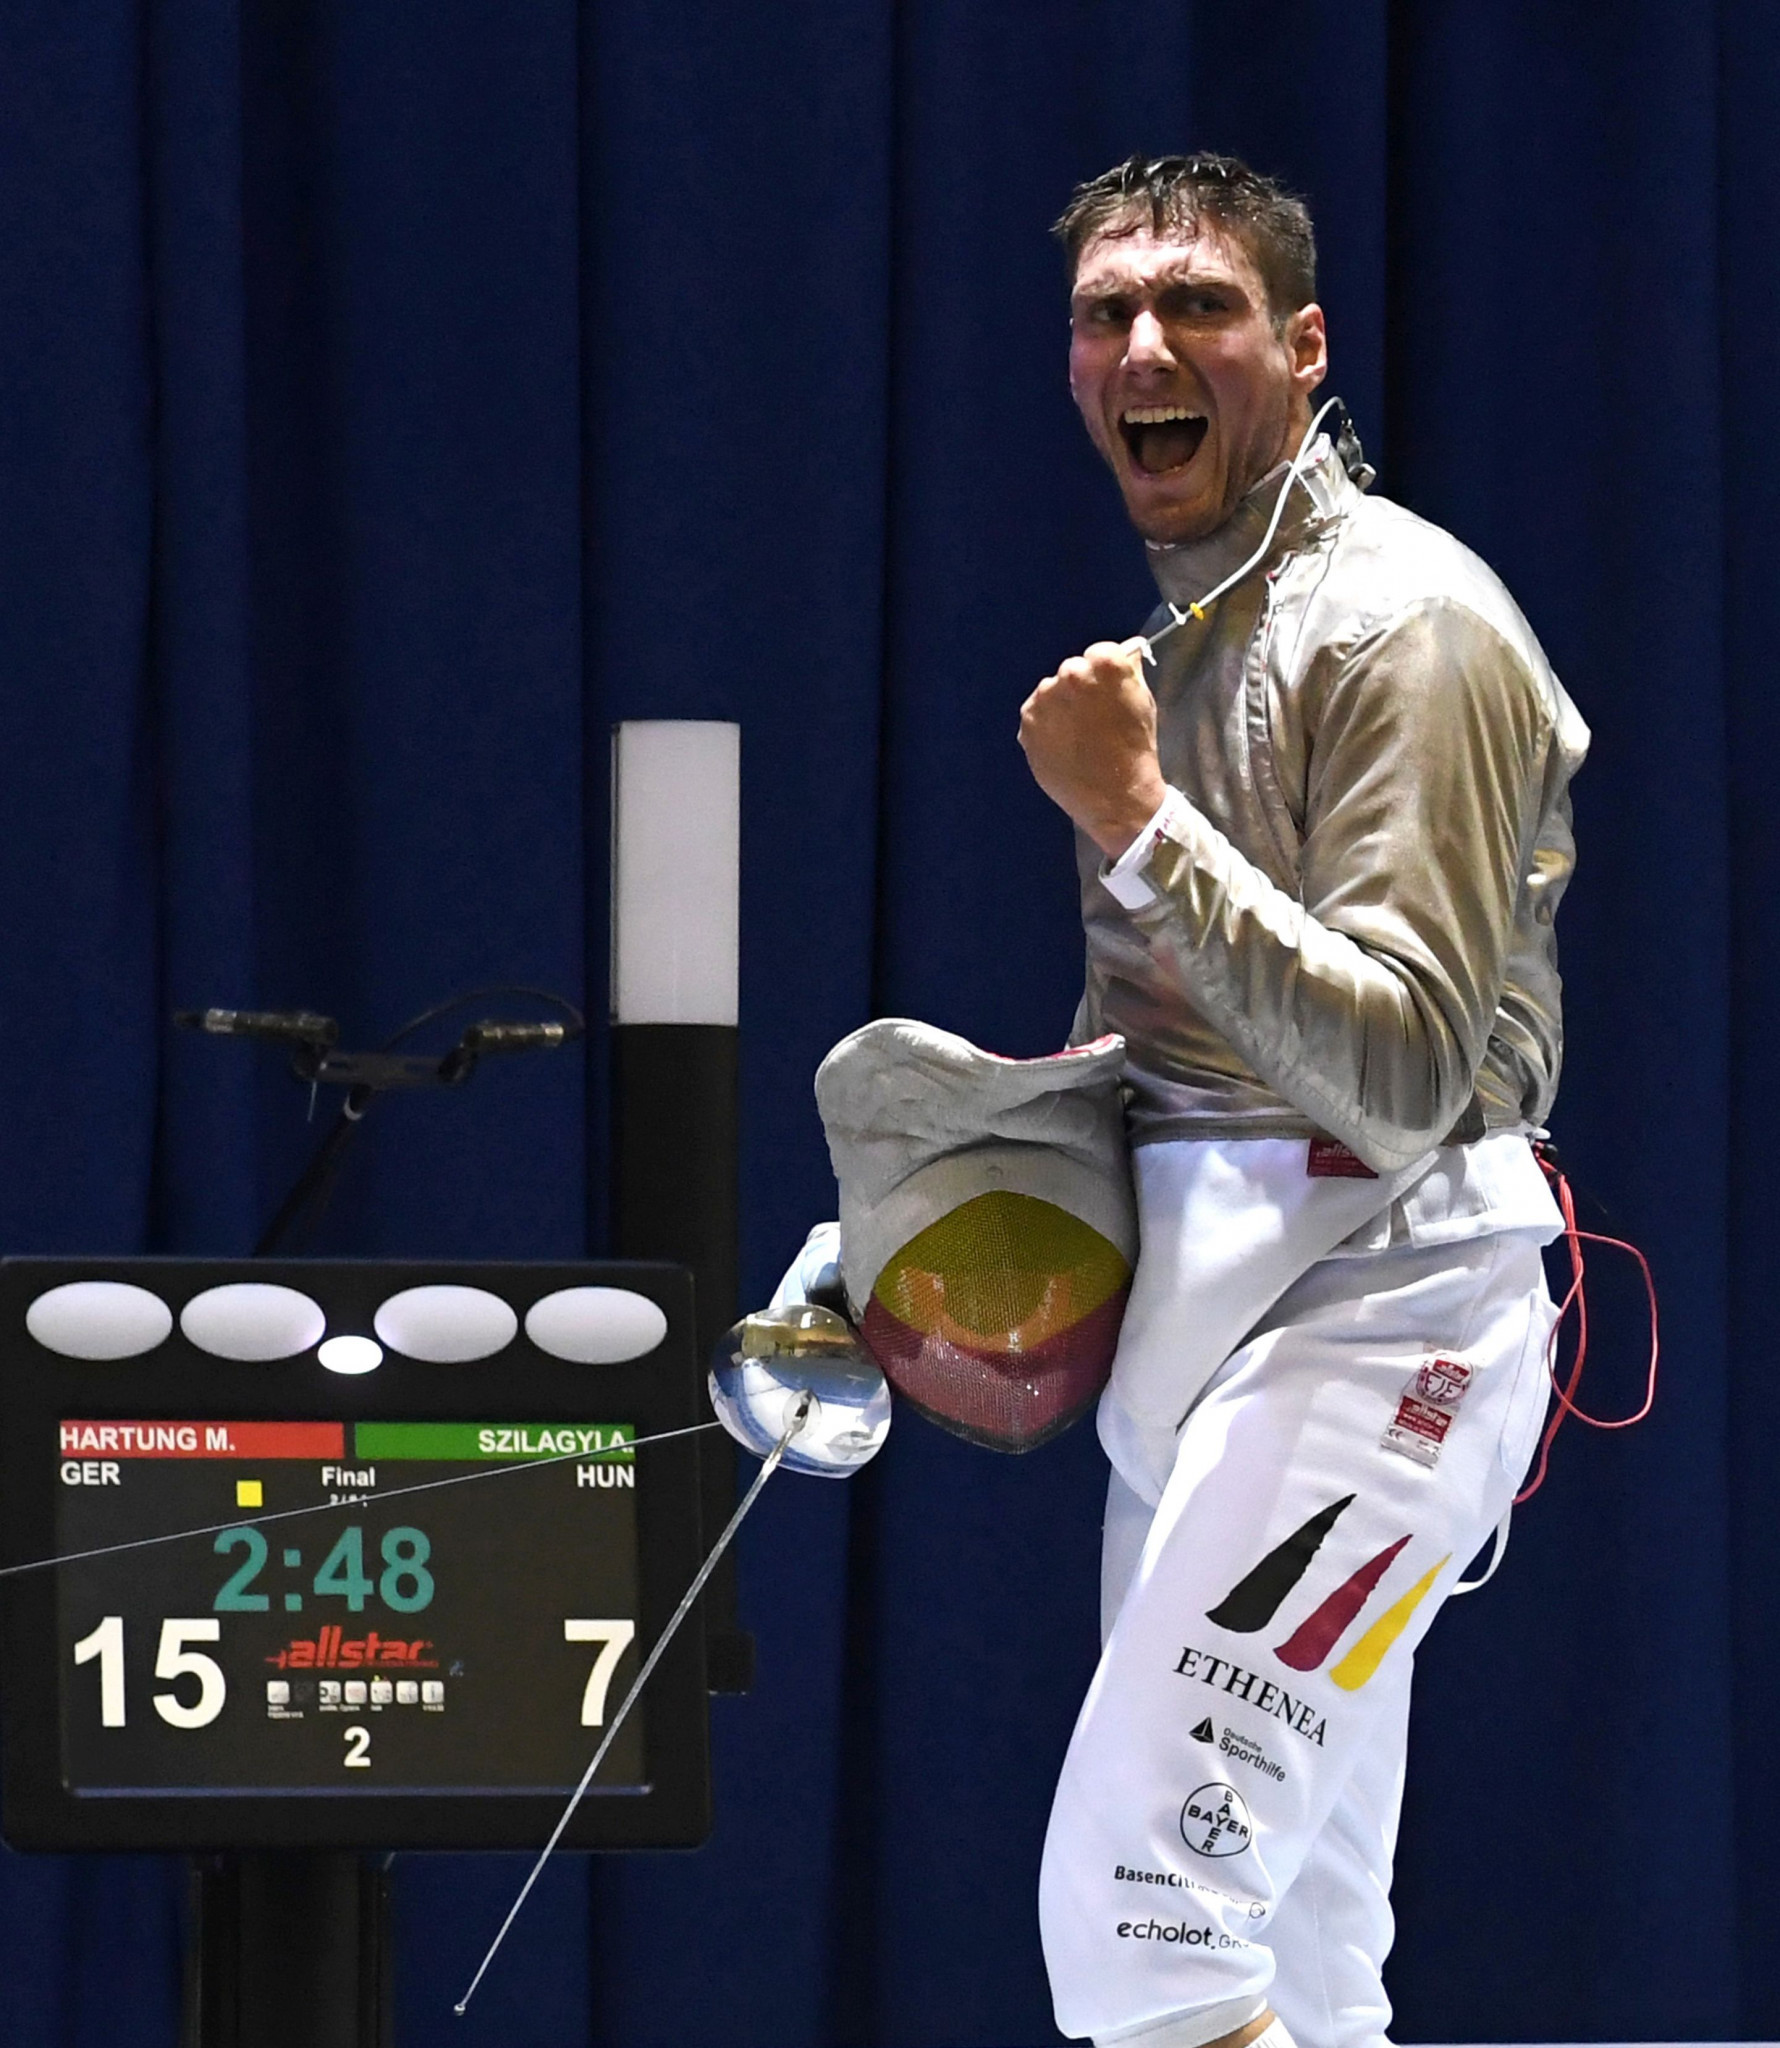 Germany's Max Hartung will look to defend his men's sabre crown in front of a home crowd ©Getty Images